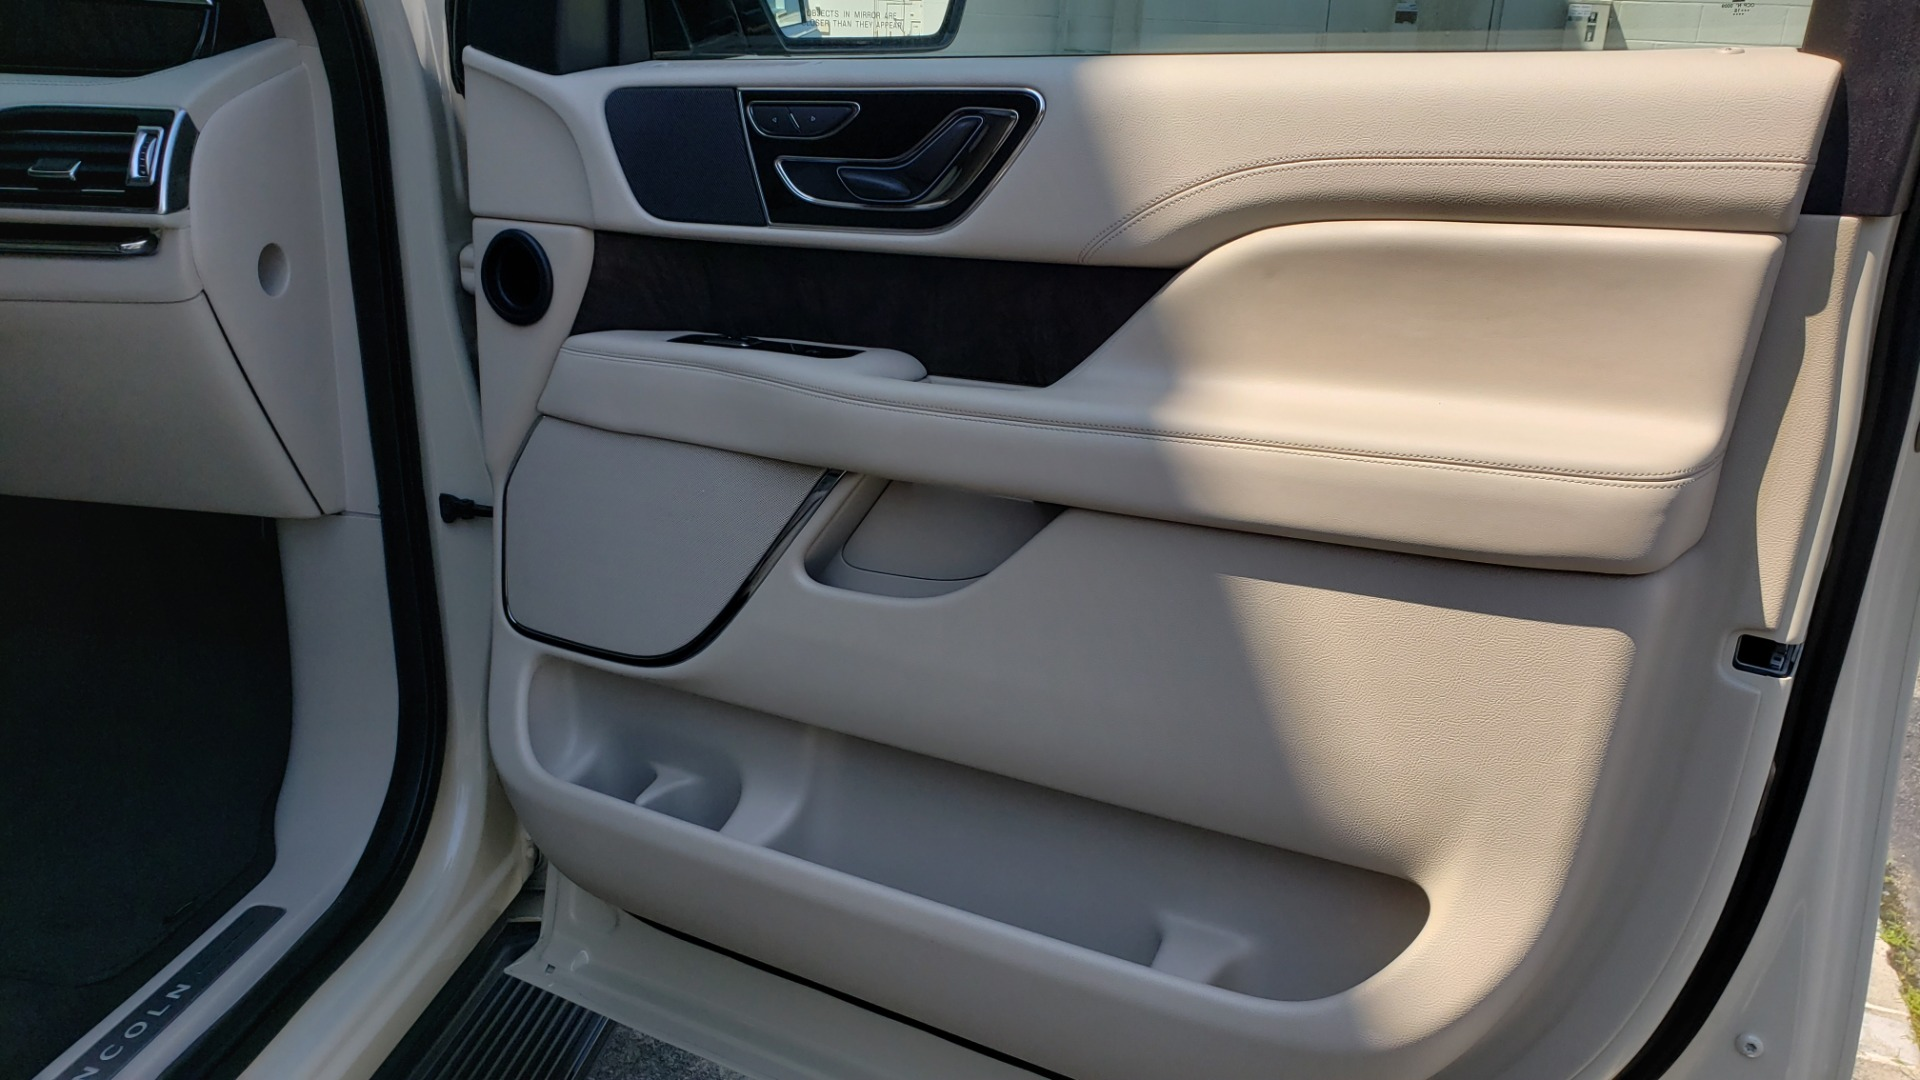 Used 2018 Lincoln NAVIGATOR PREMIERE 4X2 / TWIN-TURBO V6 / NAV / 3-ROW / REARVIEW for sale Sold at Formula Imports in Charlotte NC 28227 76